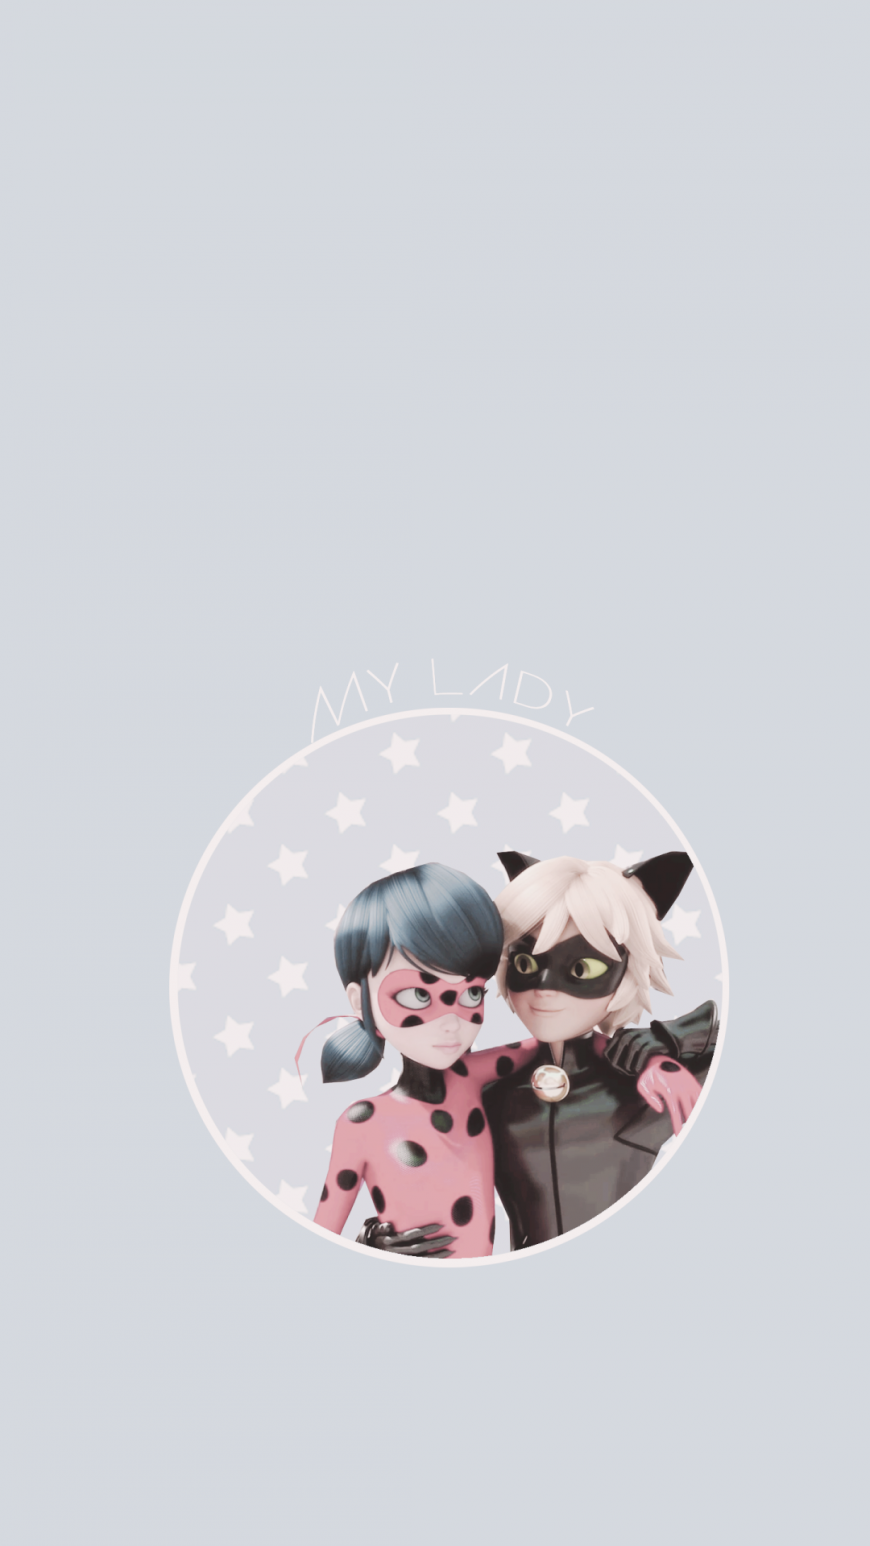 Miraculous Ladybug pastel phone wallpspers